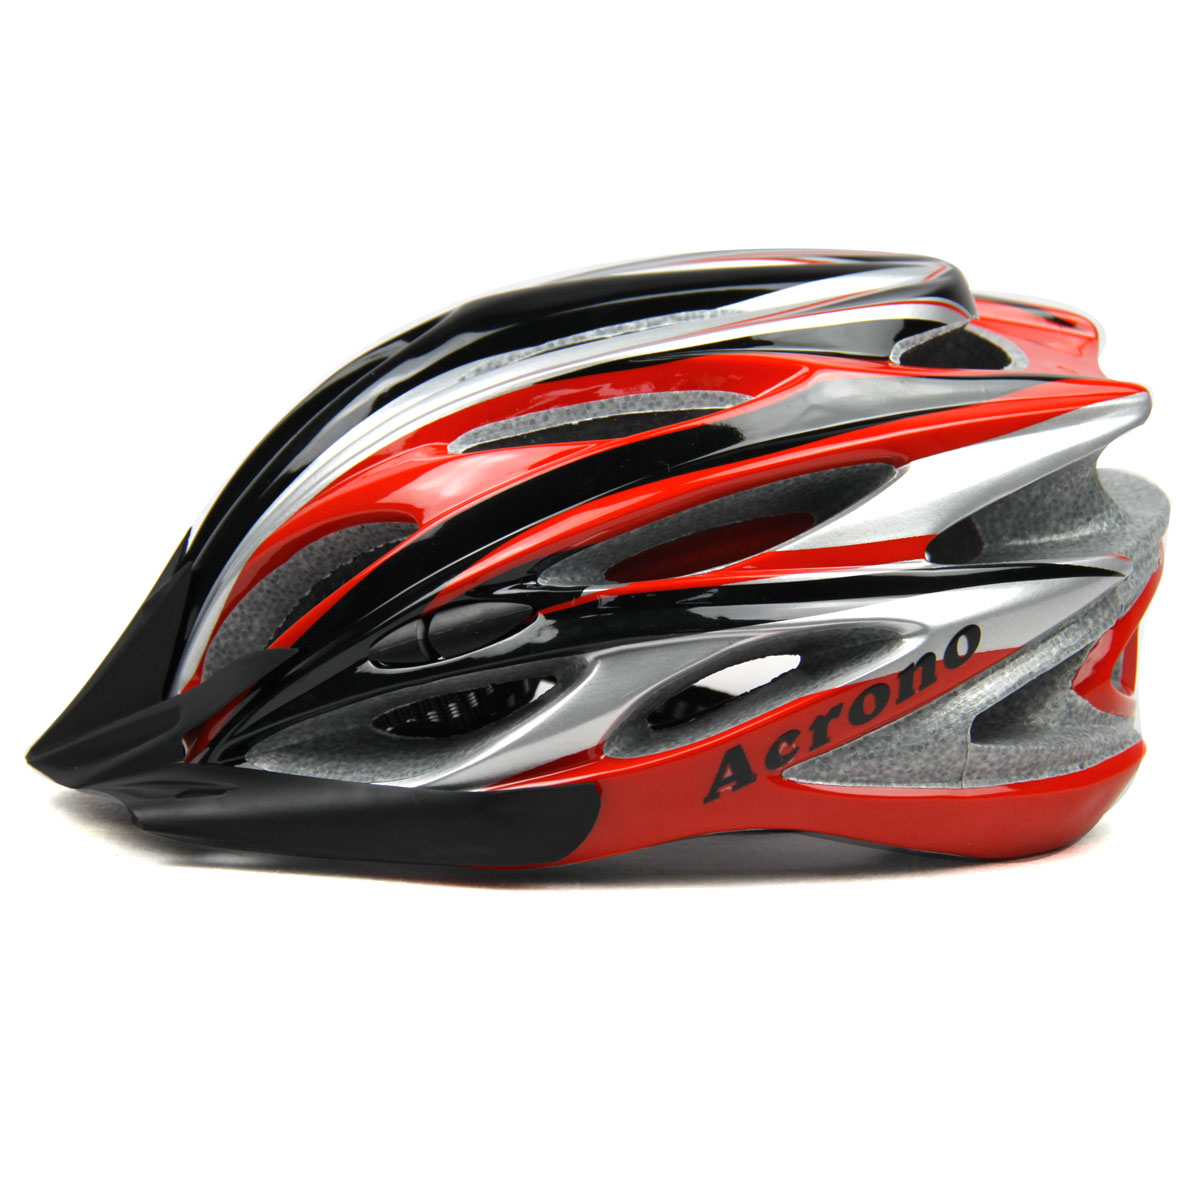 Acrono bicycle helmet road mountain bike riding helmet one-piece helmet outdoor riding equipment